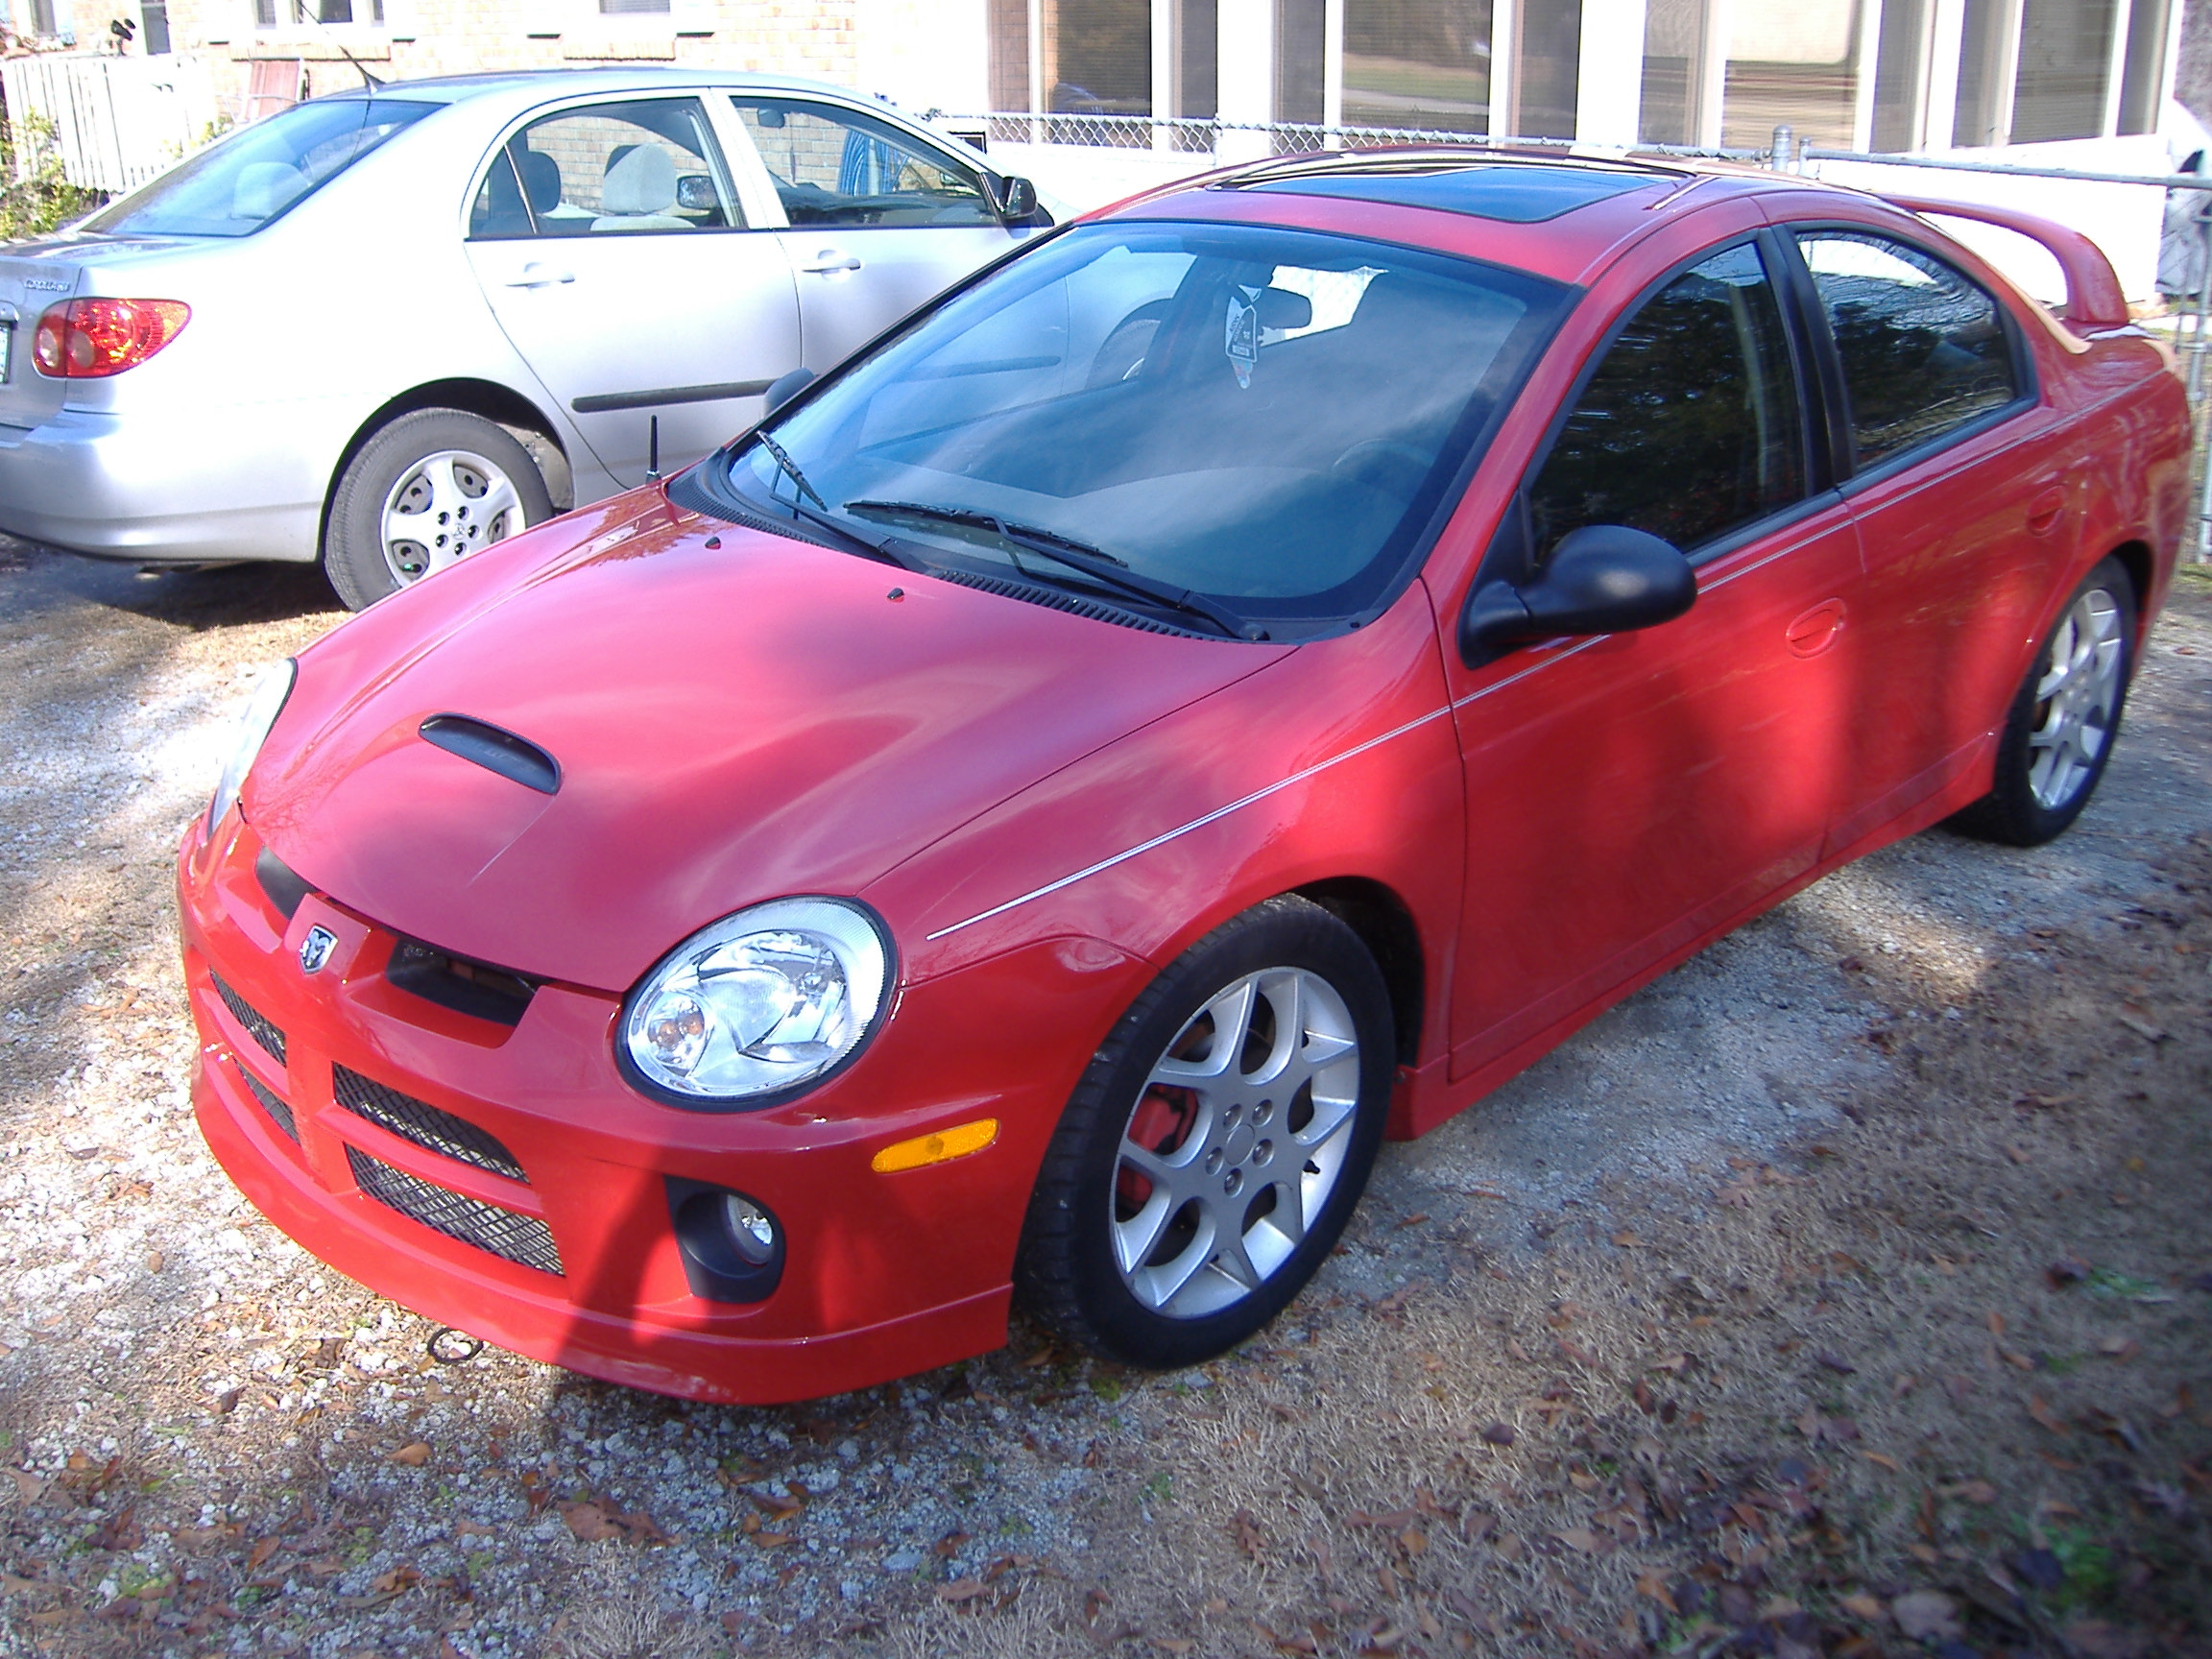 2004 dodge neon srt 4 srt 4 pictures mods upgrades wallpaper. Black Bedroom Furniture Sets. Home Design Ideas